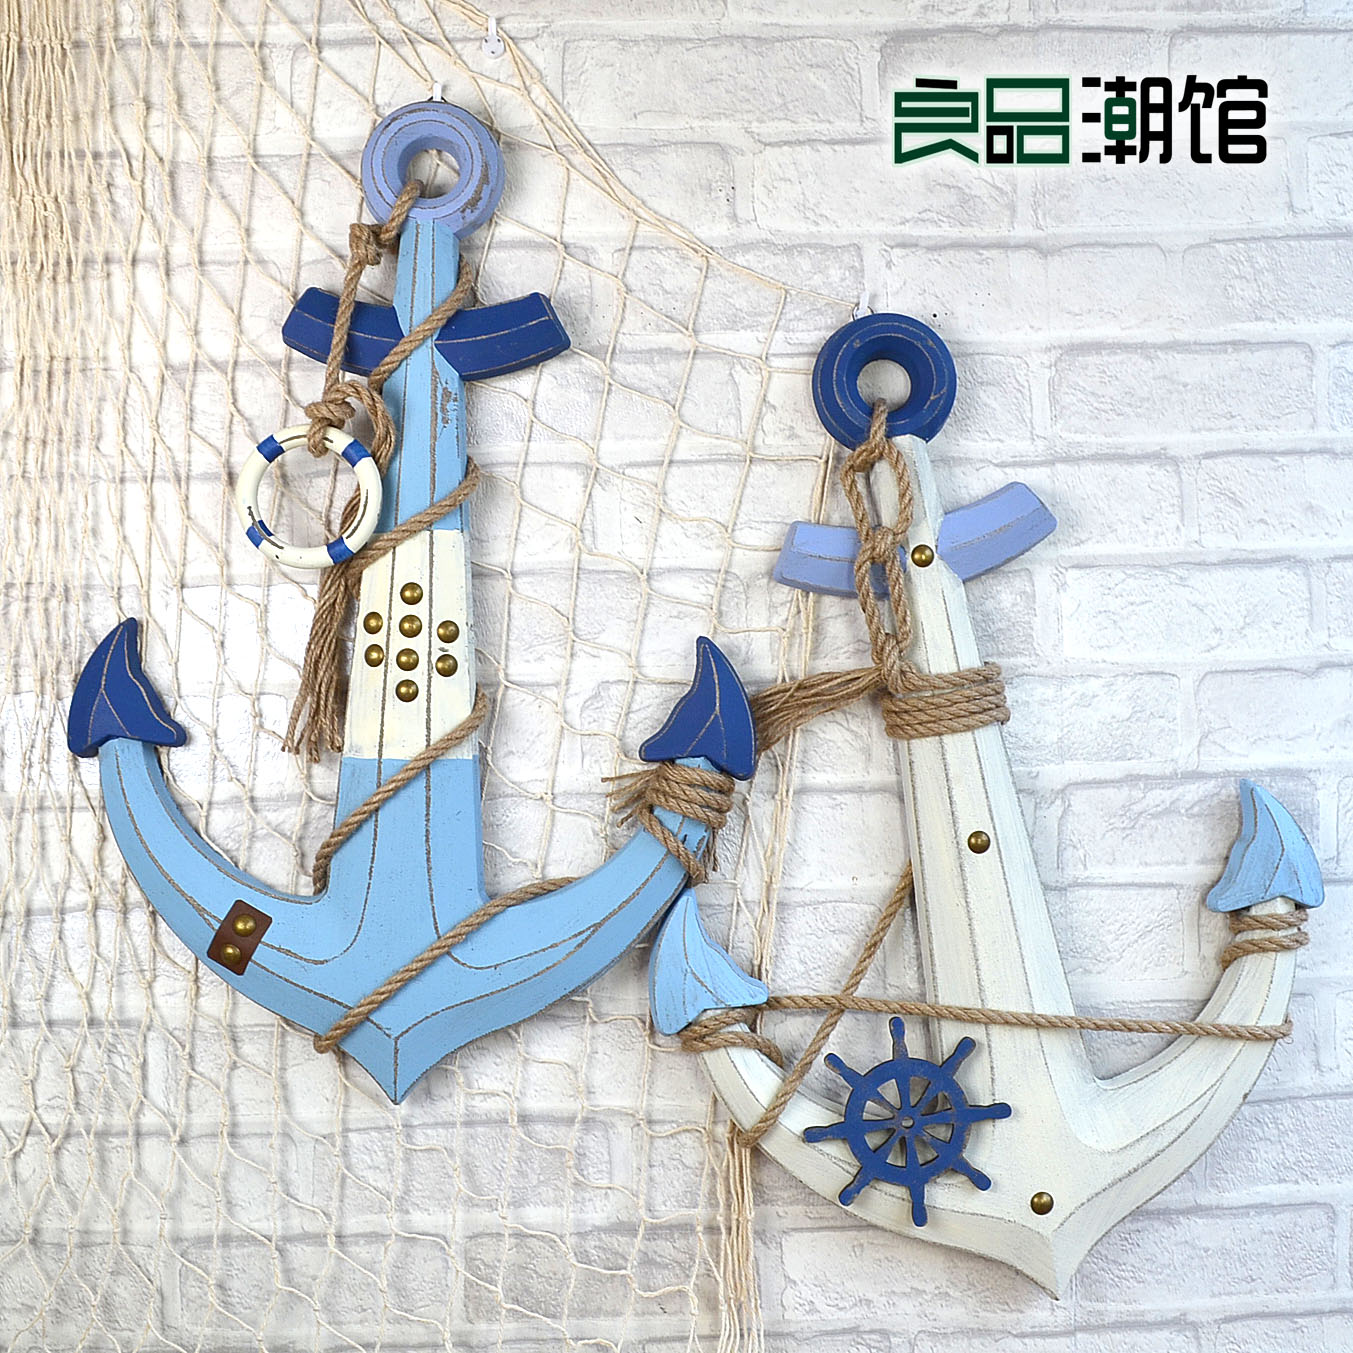 American mediterranean woodiness dress sea anchor jewelry at home decorative wall hangings creative home furnishings shop decoration